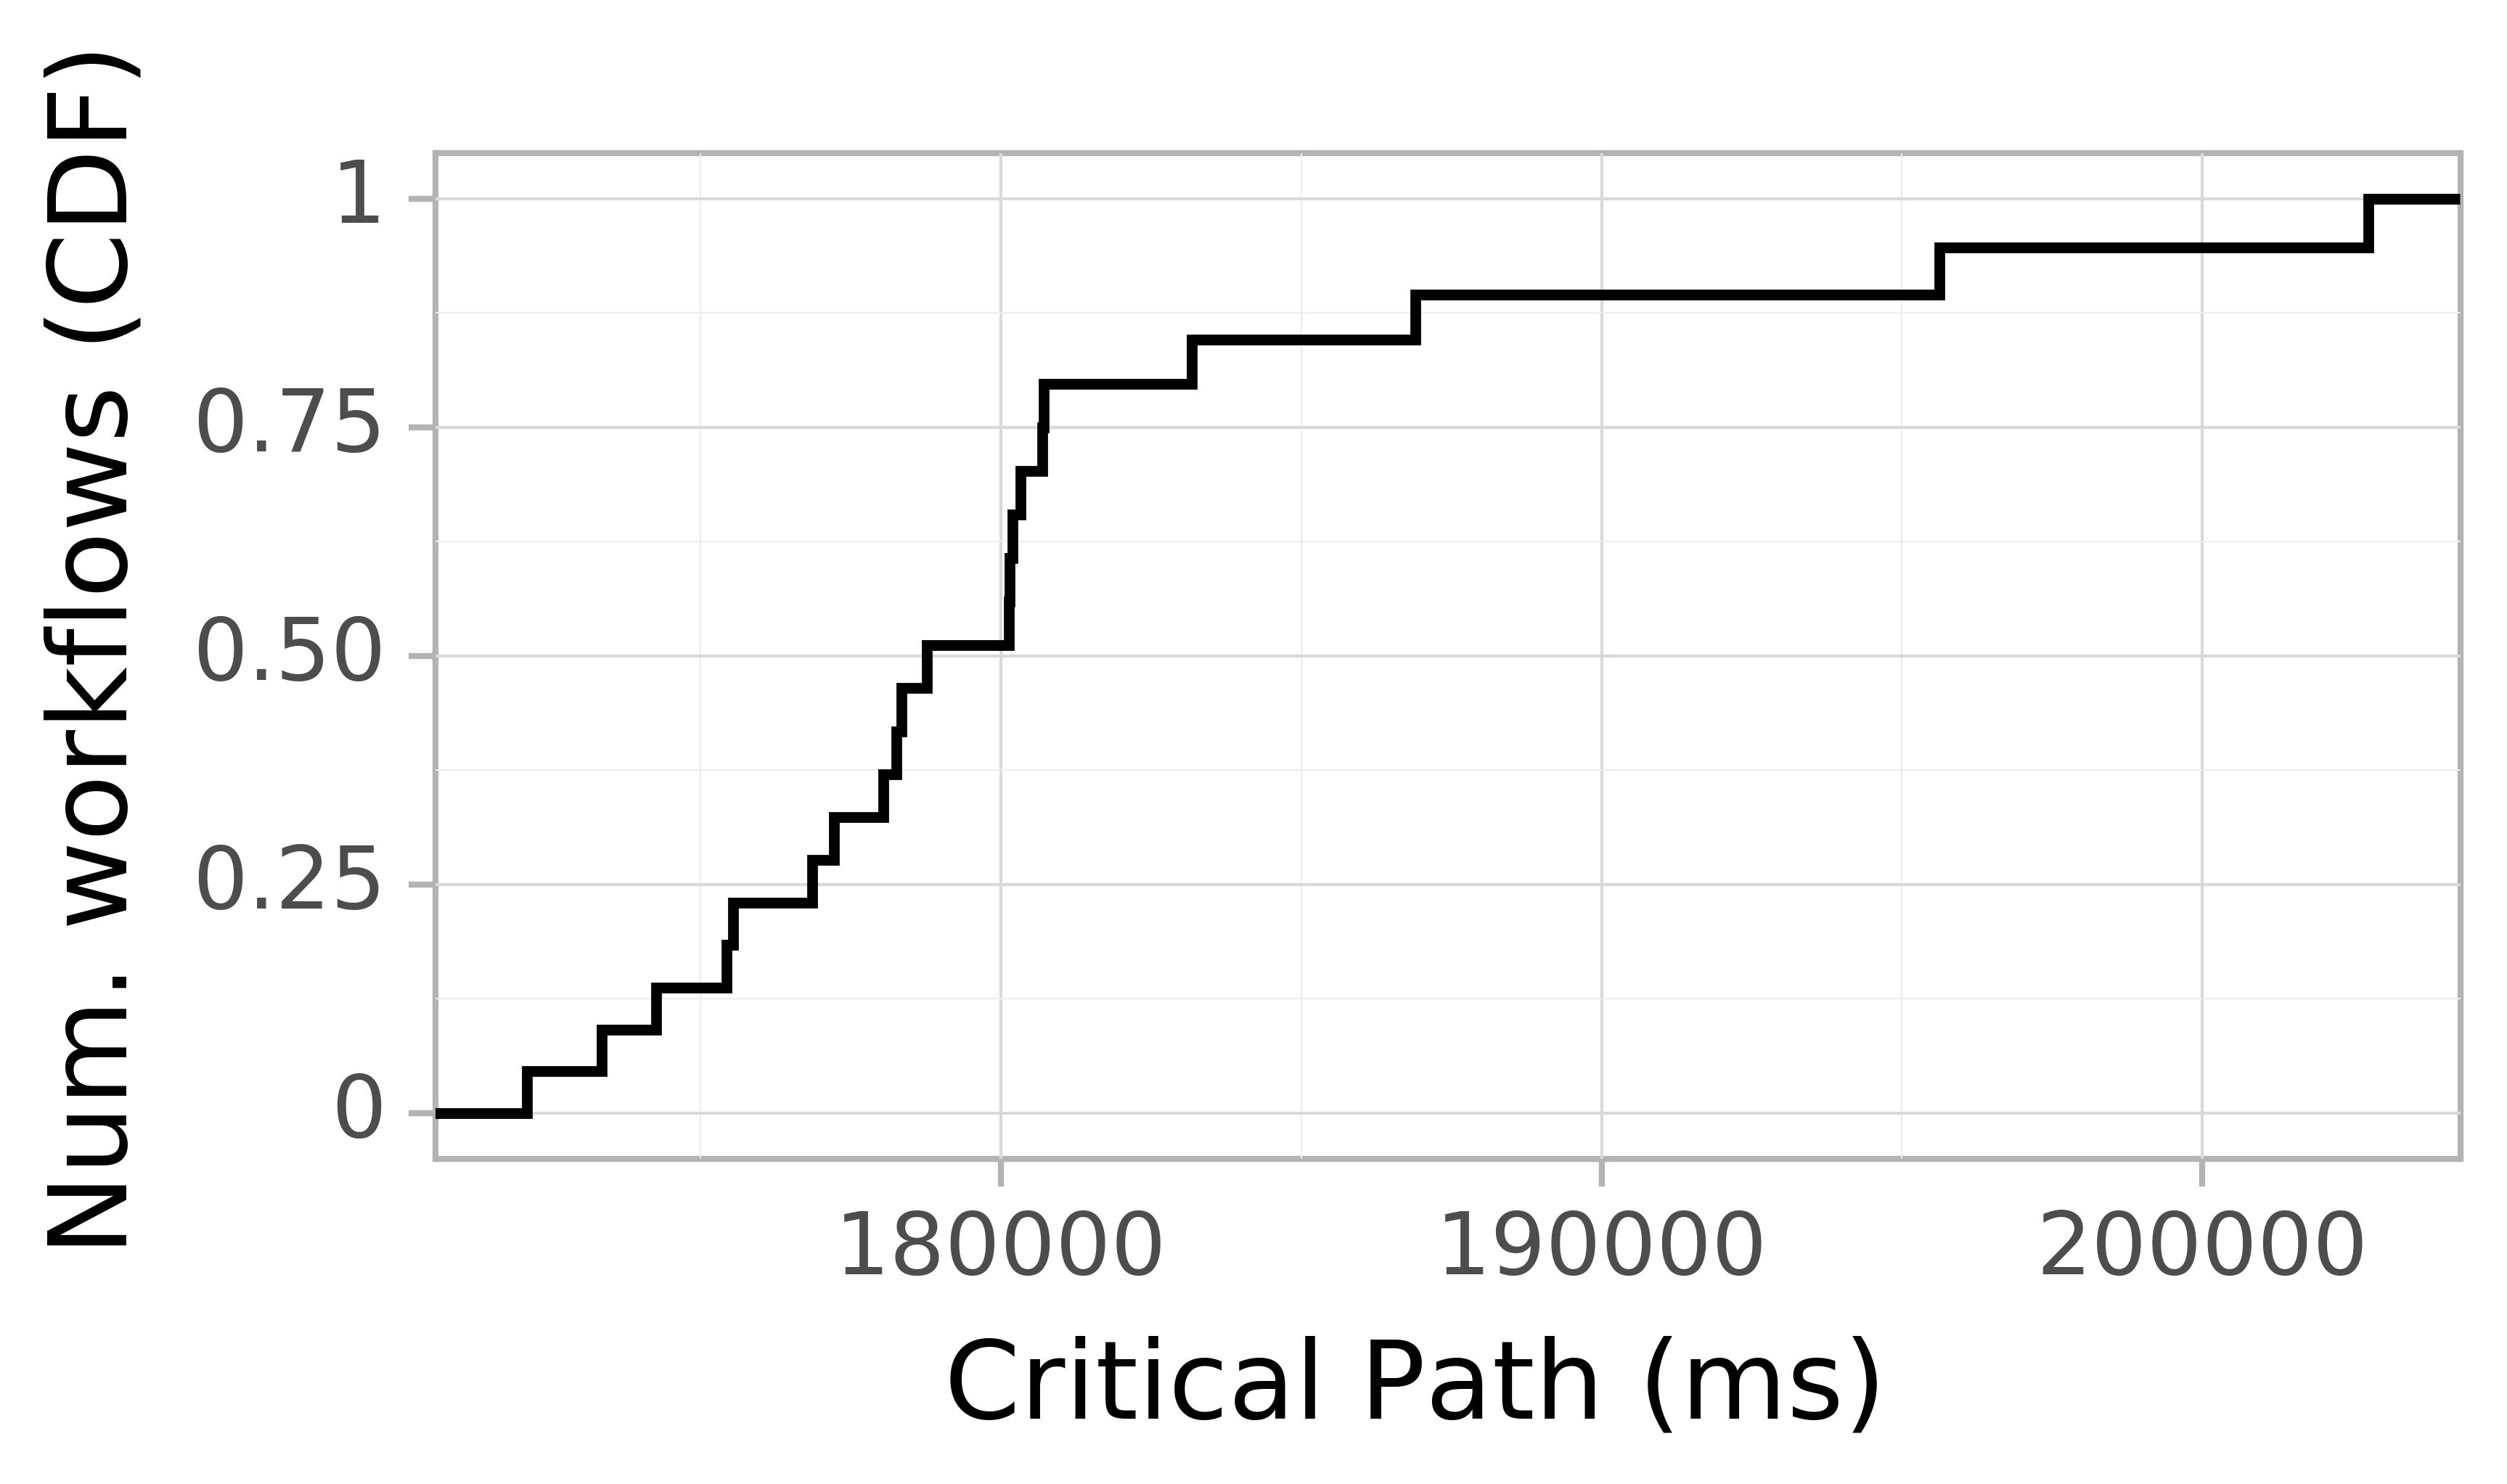 Job runtime CDF graph for the askalon-new_ee60 trace.